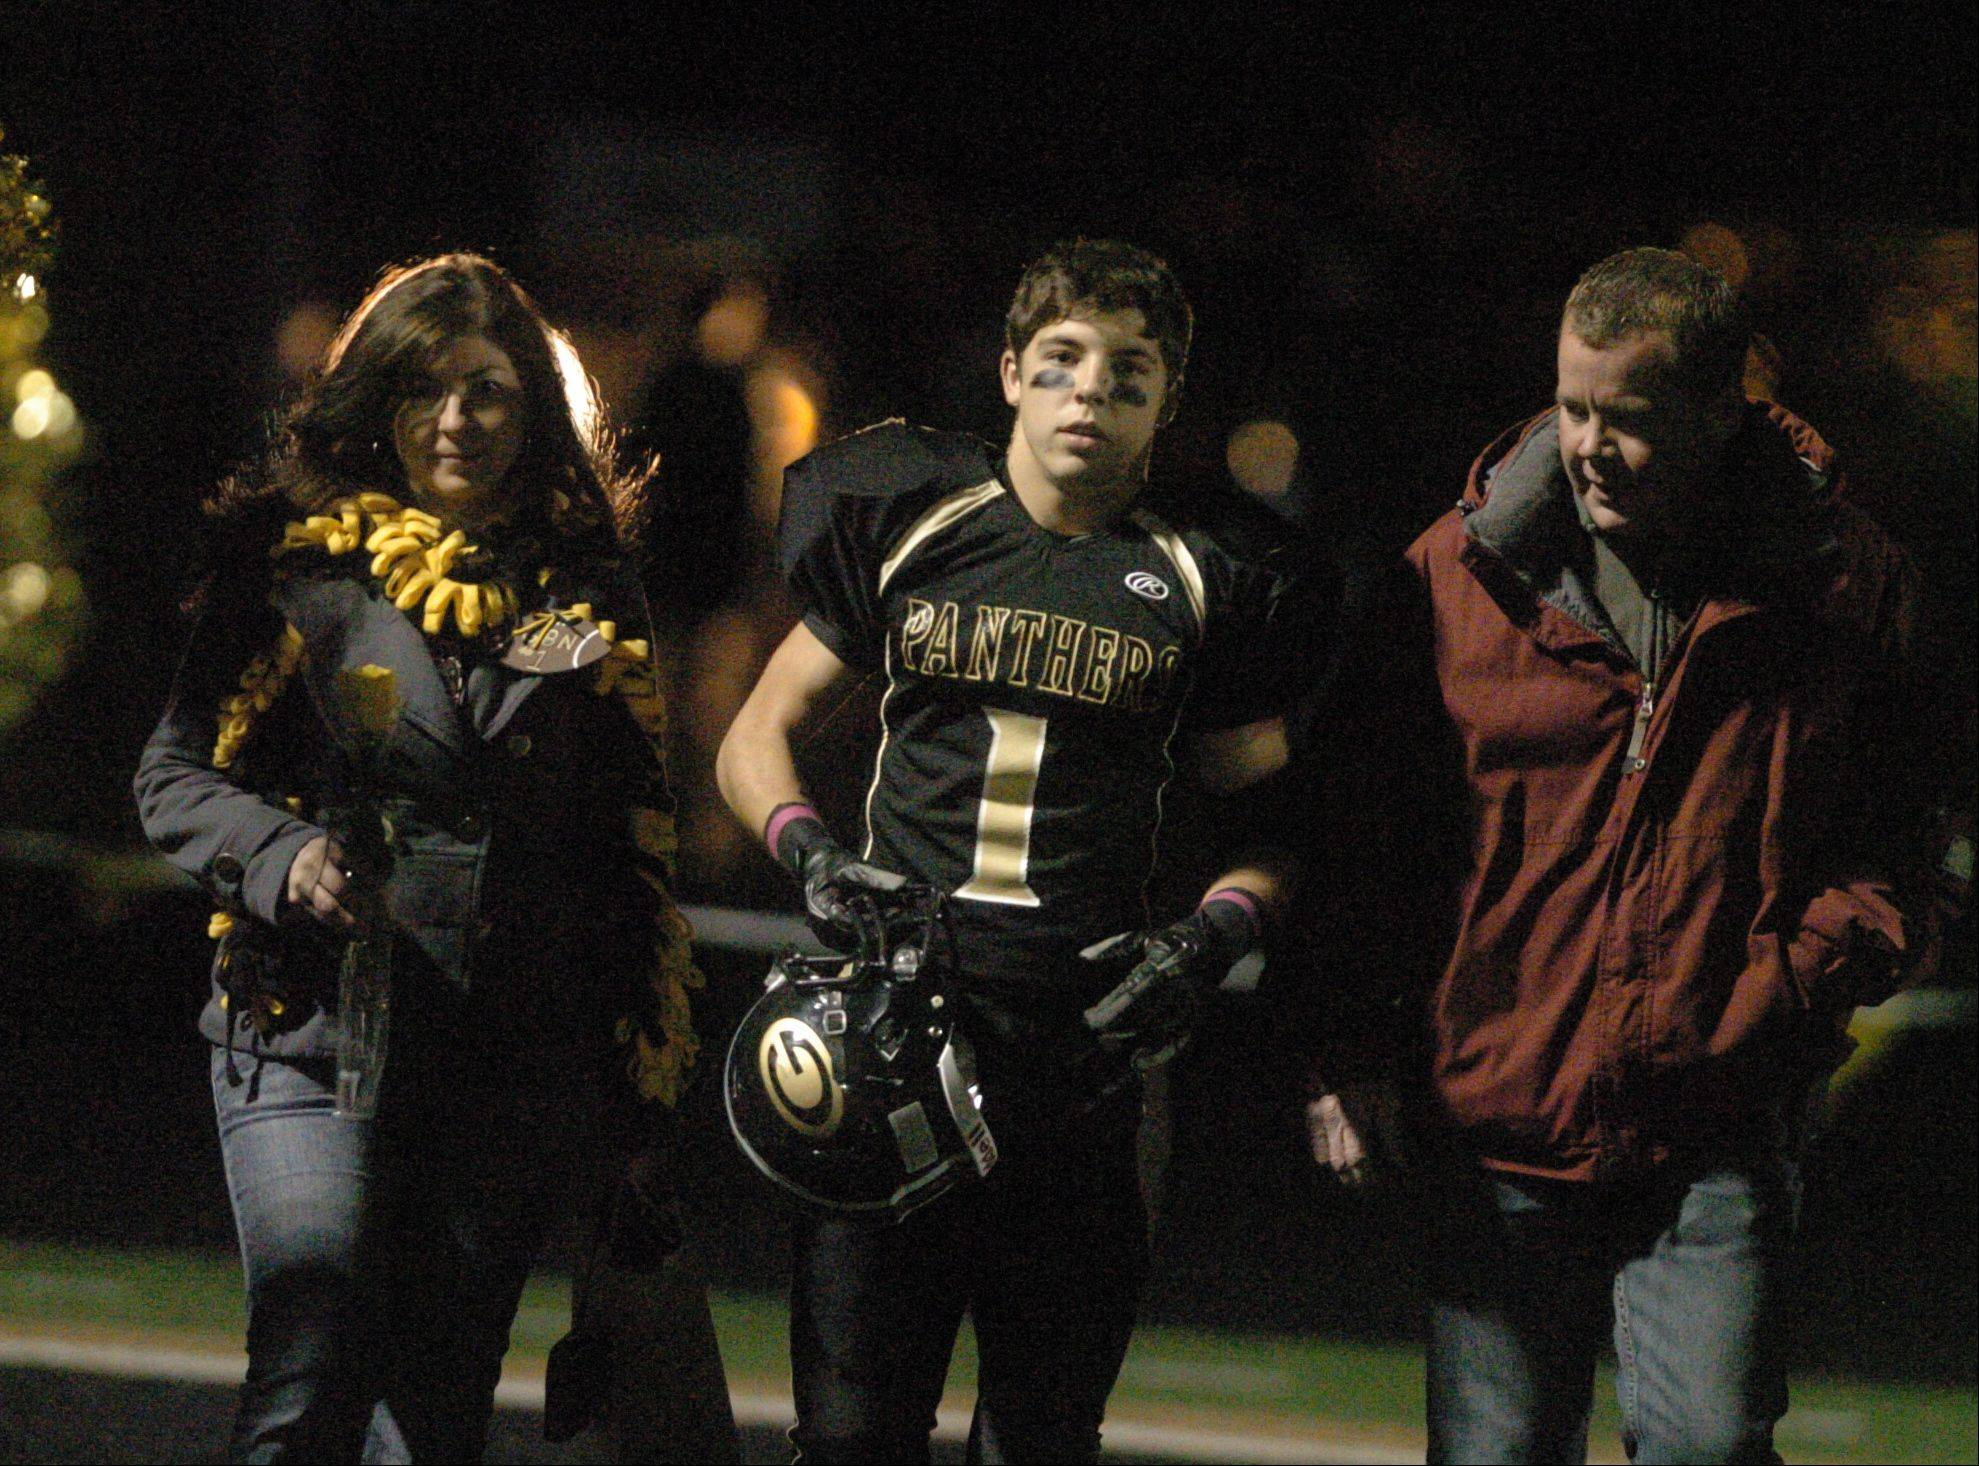 Photos from the Wheaton North at Glenbard North Friday night football game, October 12 in Carol Stream.